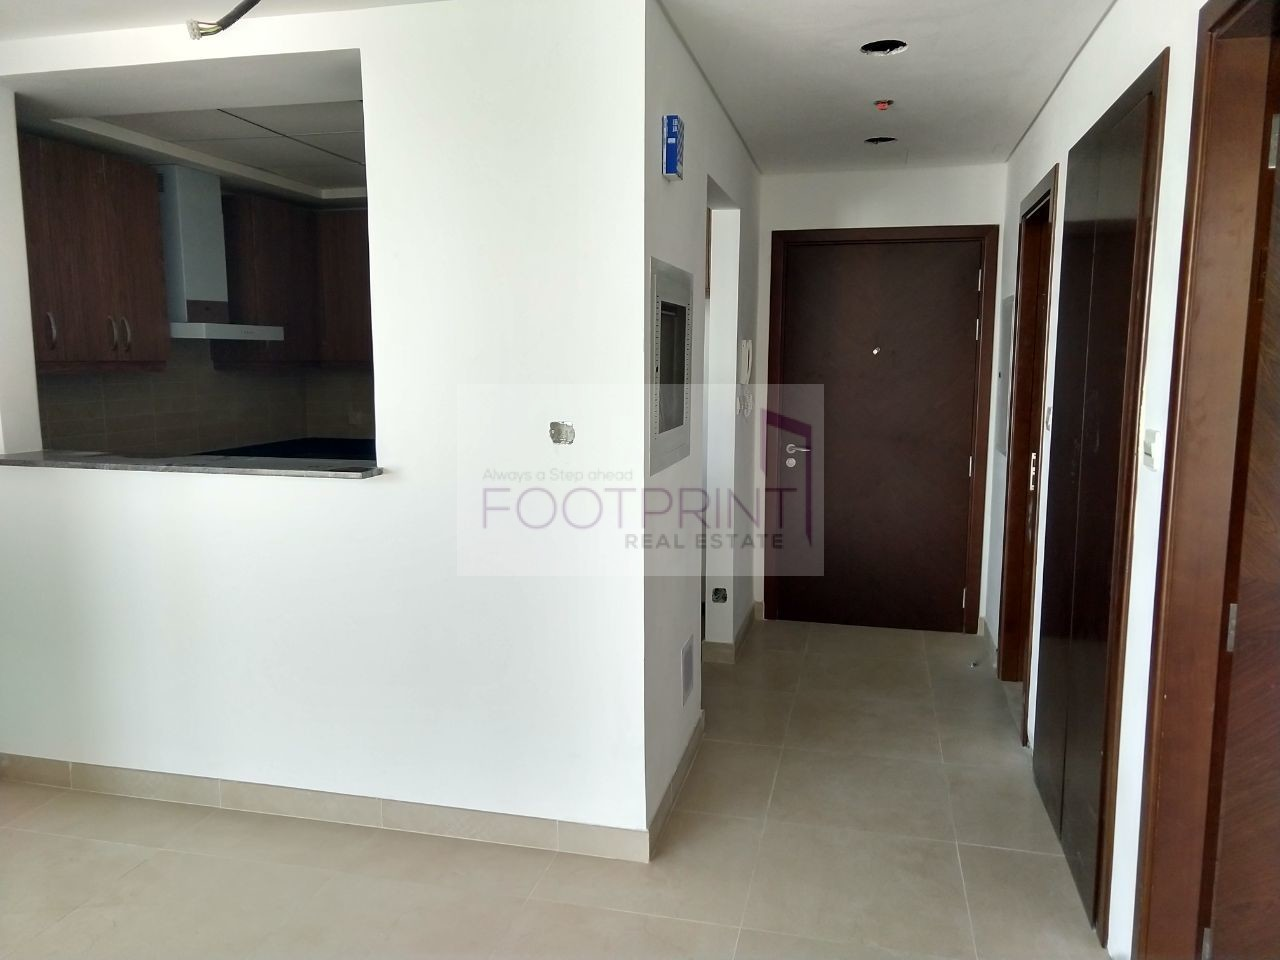 Flat Ready  Sep-18, pay after completion